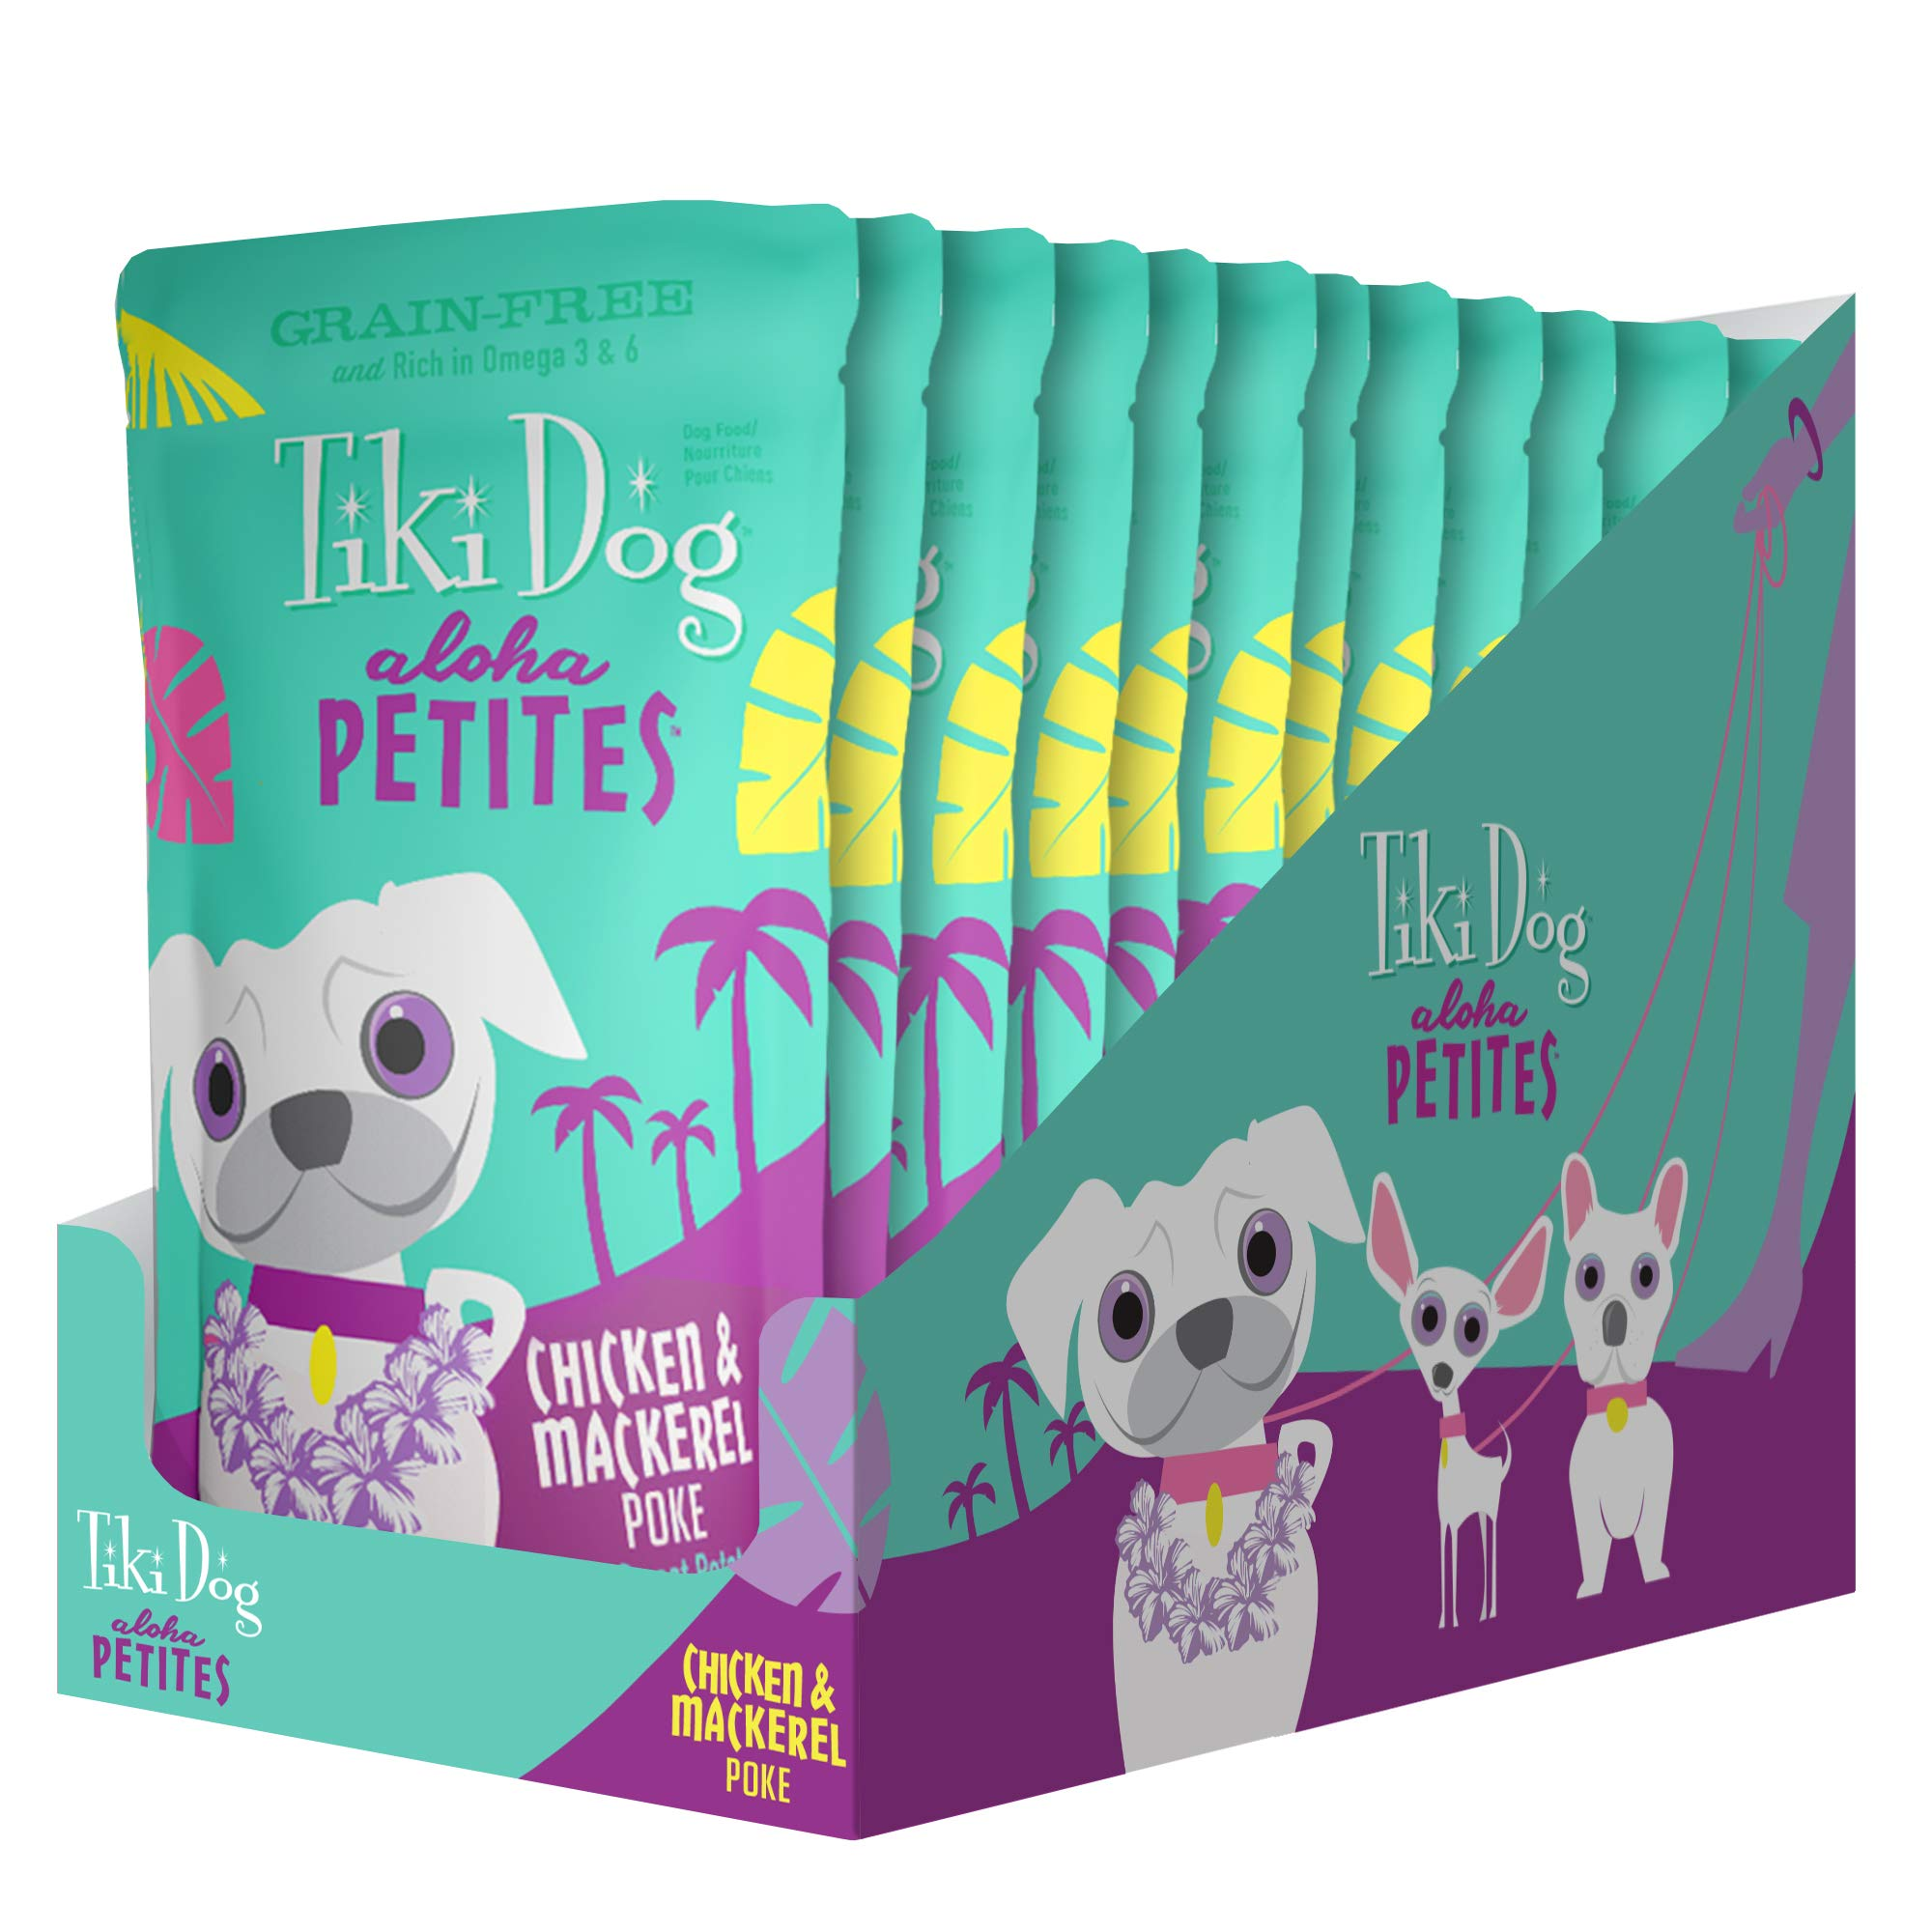 Tiki Dog Aloha Petites Gluten & Grain Free Wet Food in a Pouch for Adult Dogs with Shredded Meat & Superfoods, 3.5oz 12pk, Chicken & Mackerel Poke by Tiki Pets